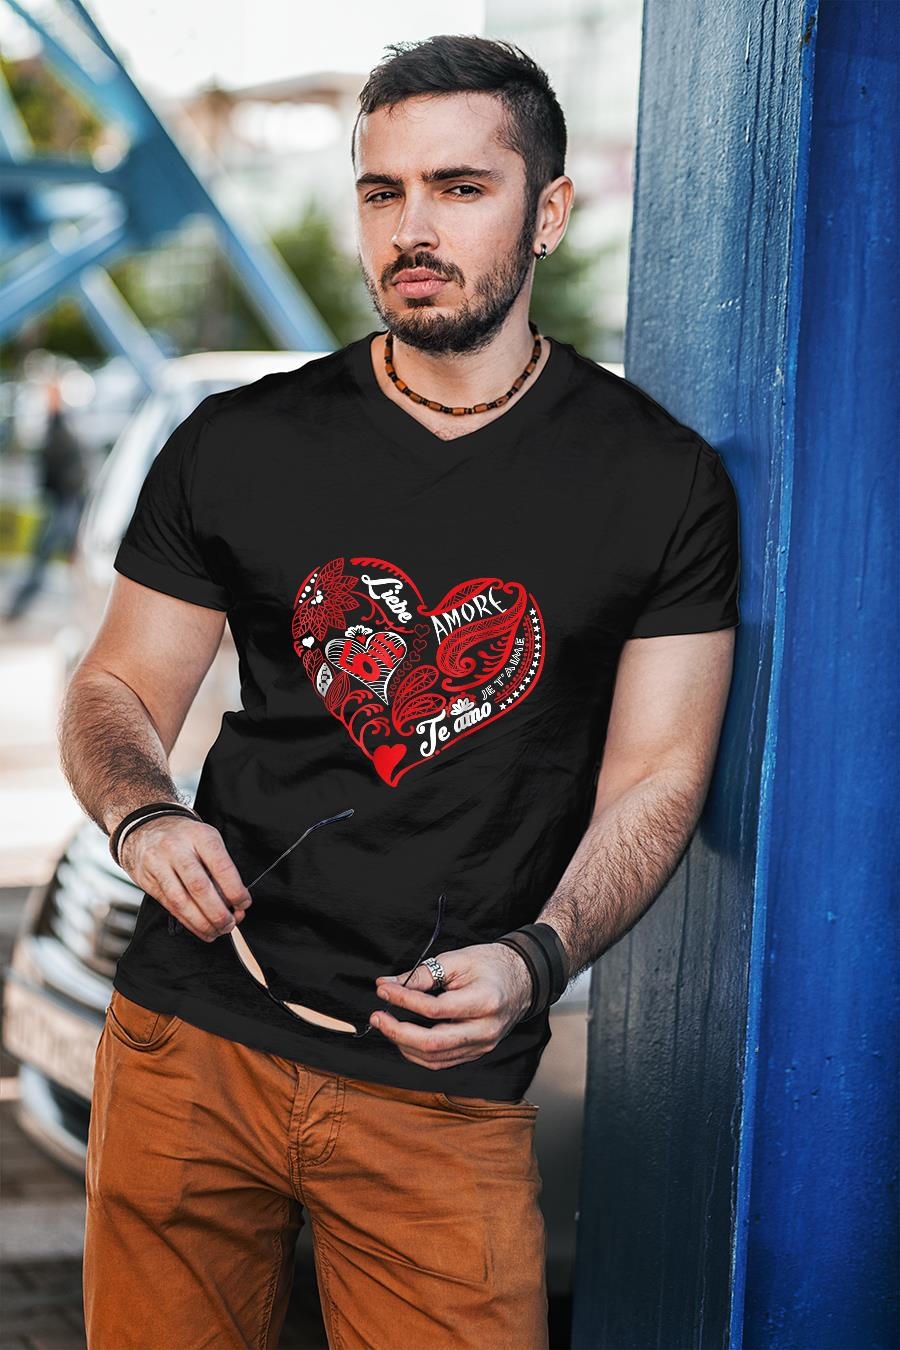 Valentine Love what matters in multiple languages shirt unisex